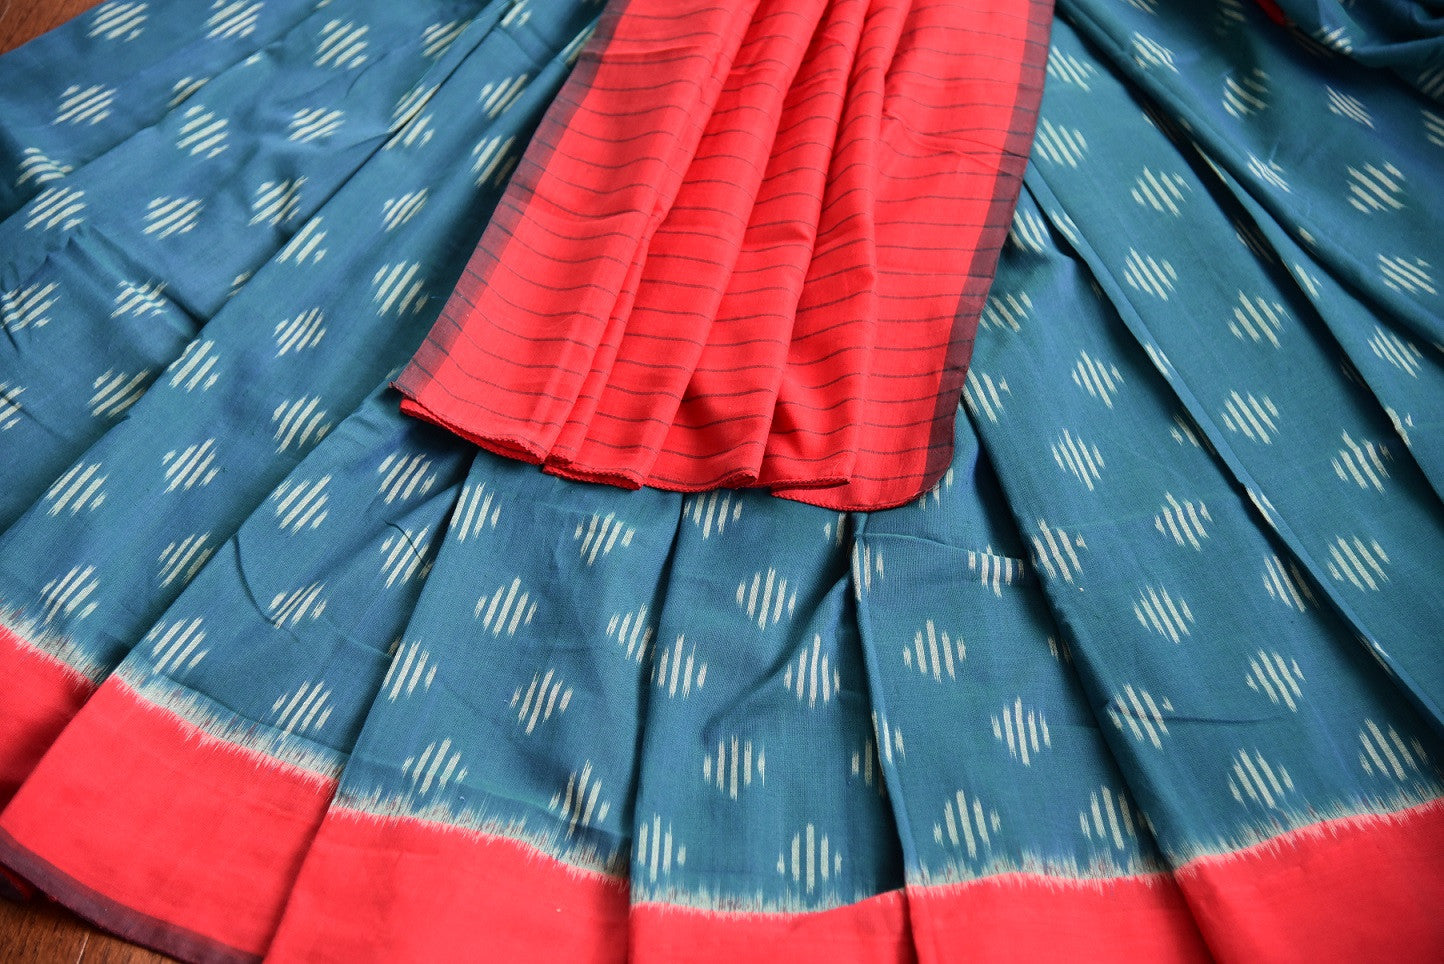 90D437 Cotton ikkat traditional saree available at our ethnic clothing store - Pure Elegance. The red and blue sari makes for a great pick for pujas and Indian festivals.